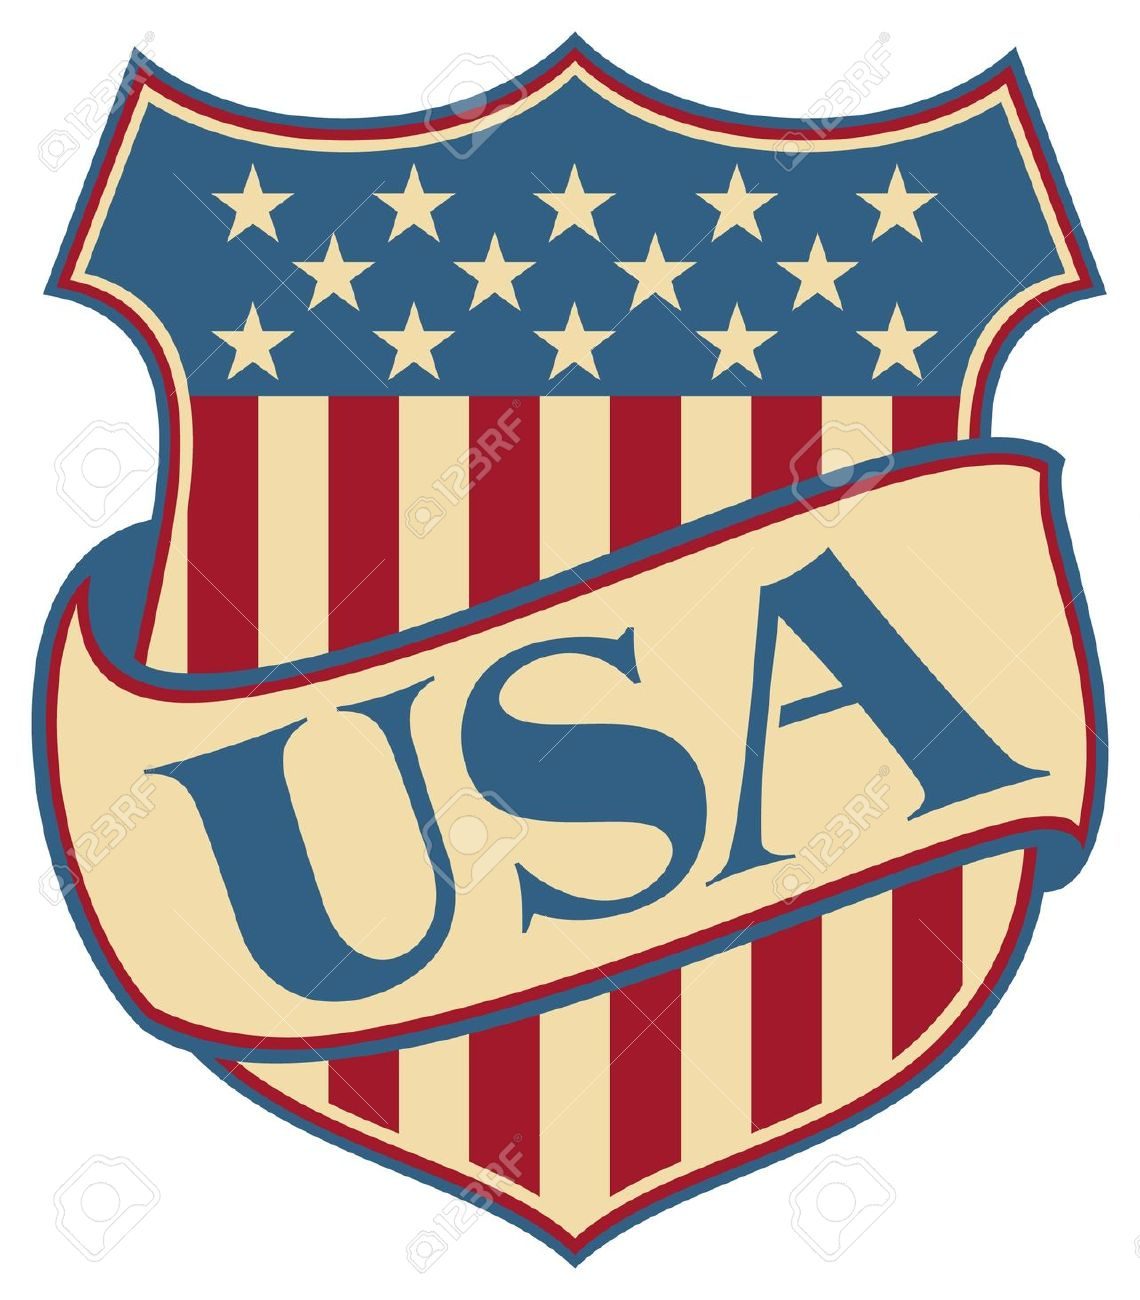 American Symbols Clipart at GetDrawings com | Free for